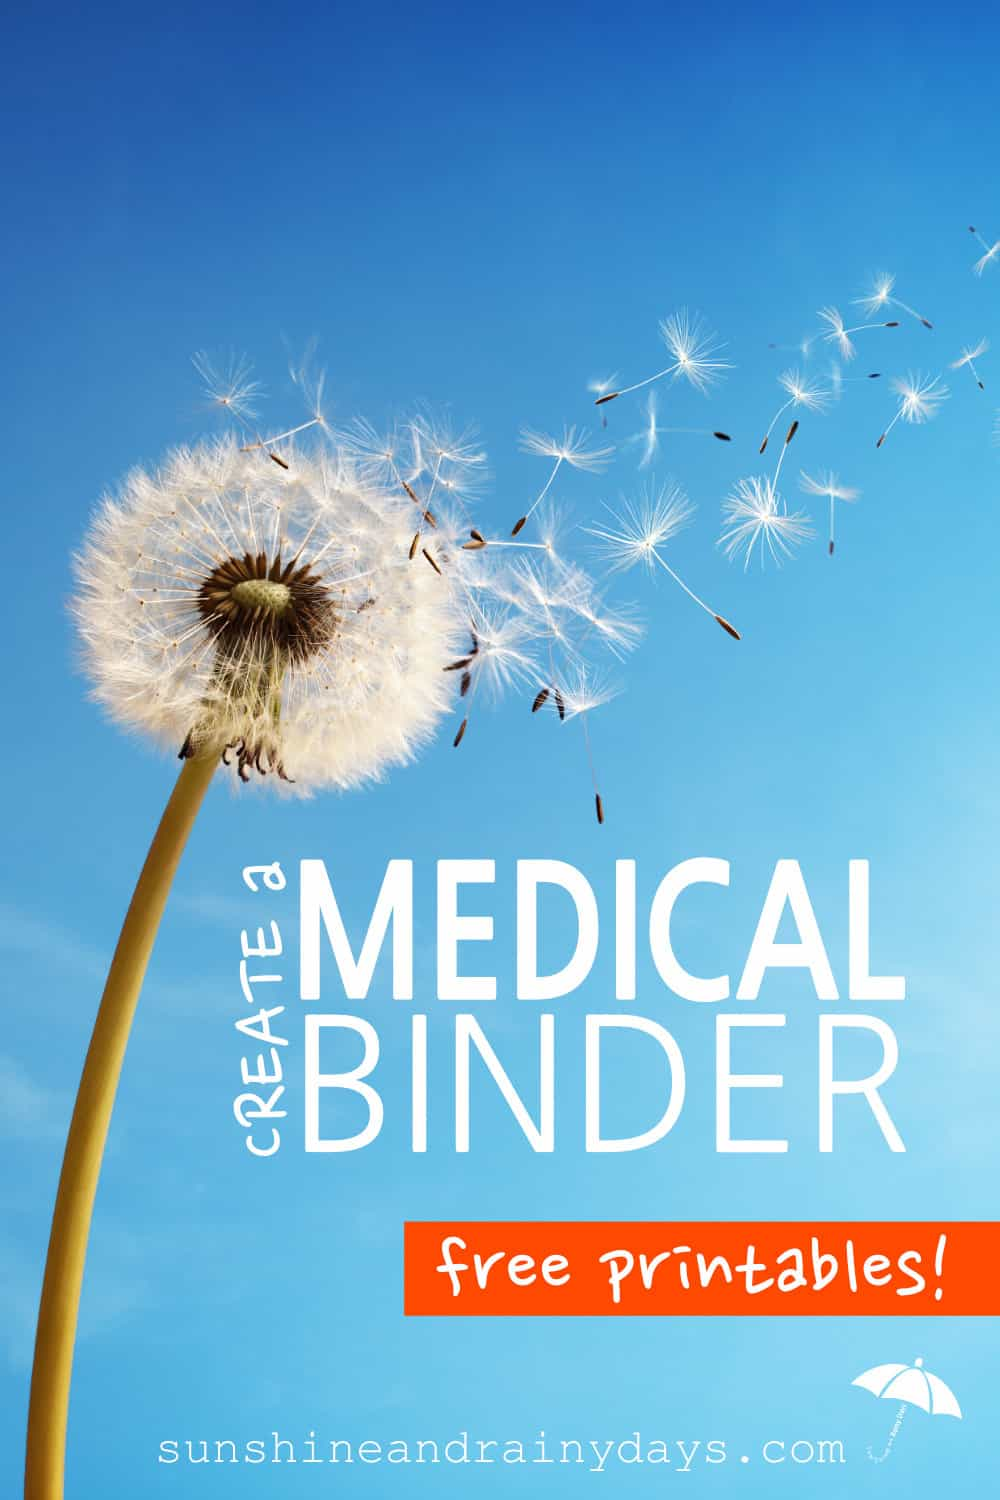 Time is valuable to both you and your doctors. Make that time as efficient as possible by creating a Medical Binder with Medical Binder Printables containing all of your pertinent medical information.